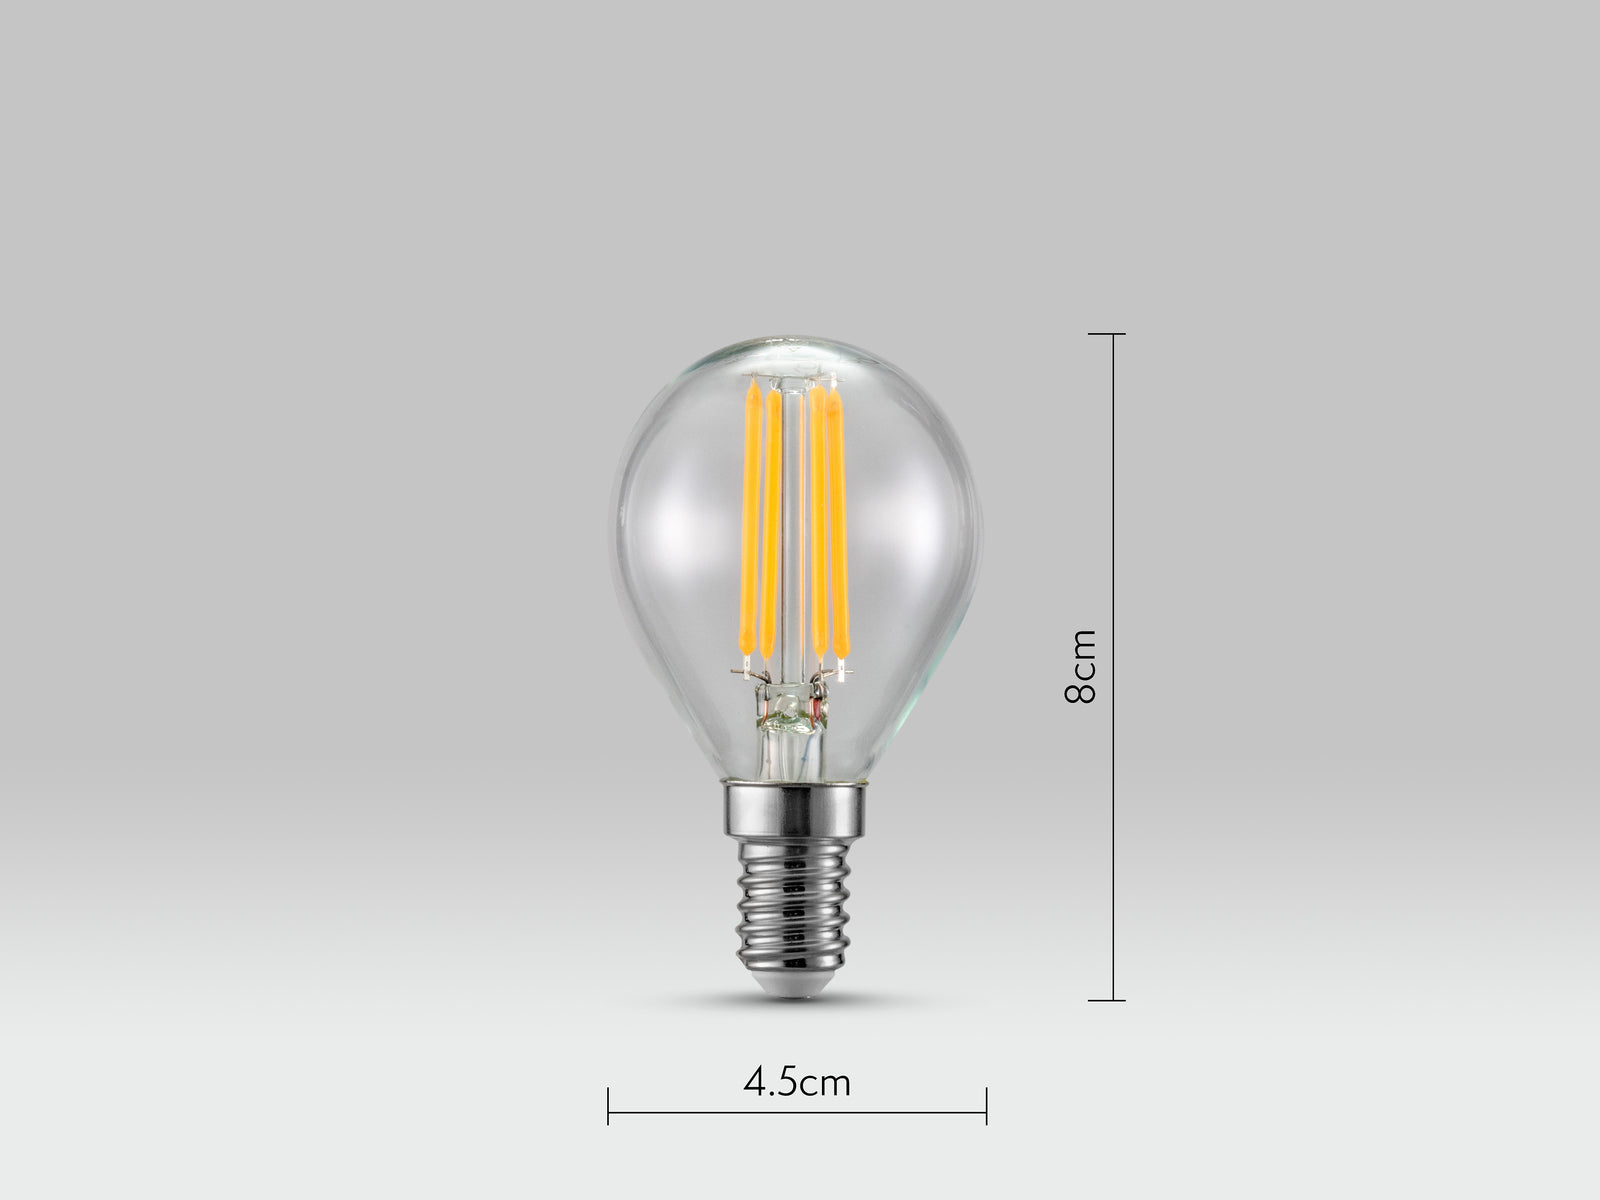 Ses led 2w bulb | dimensions | houseof.com